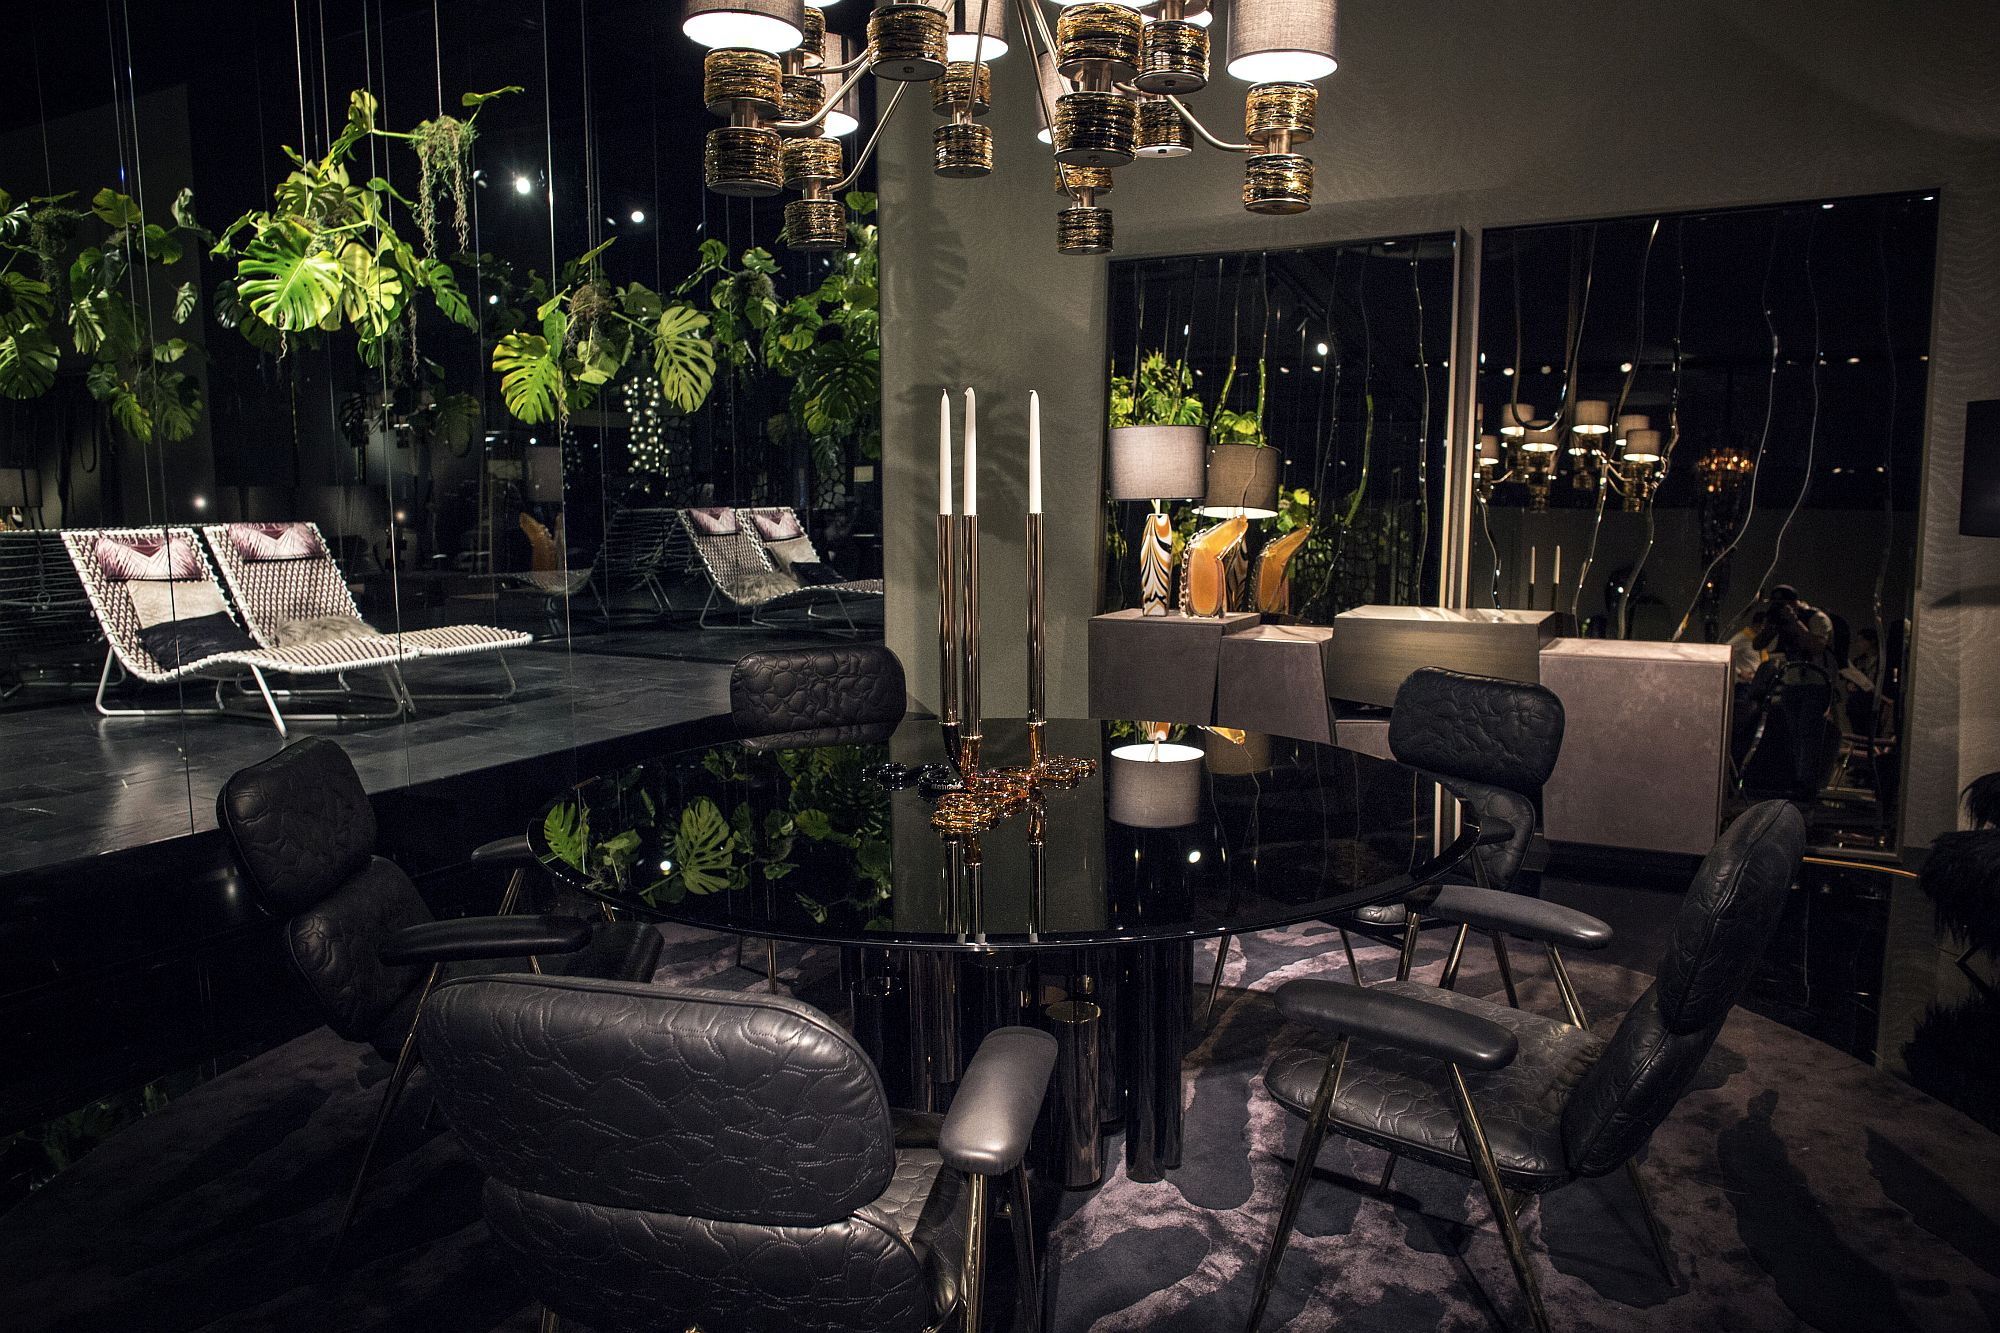 The black dining table becomes the focal point of the dining space